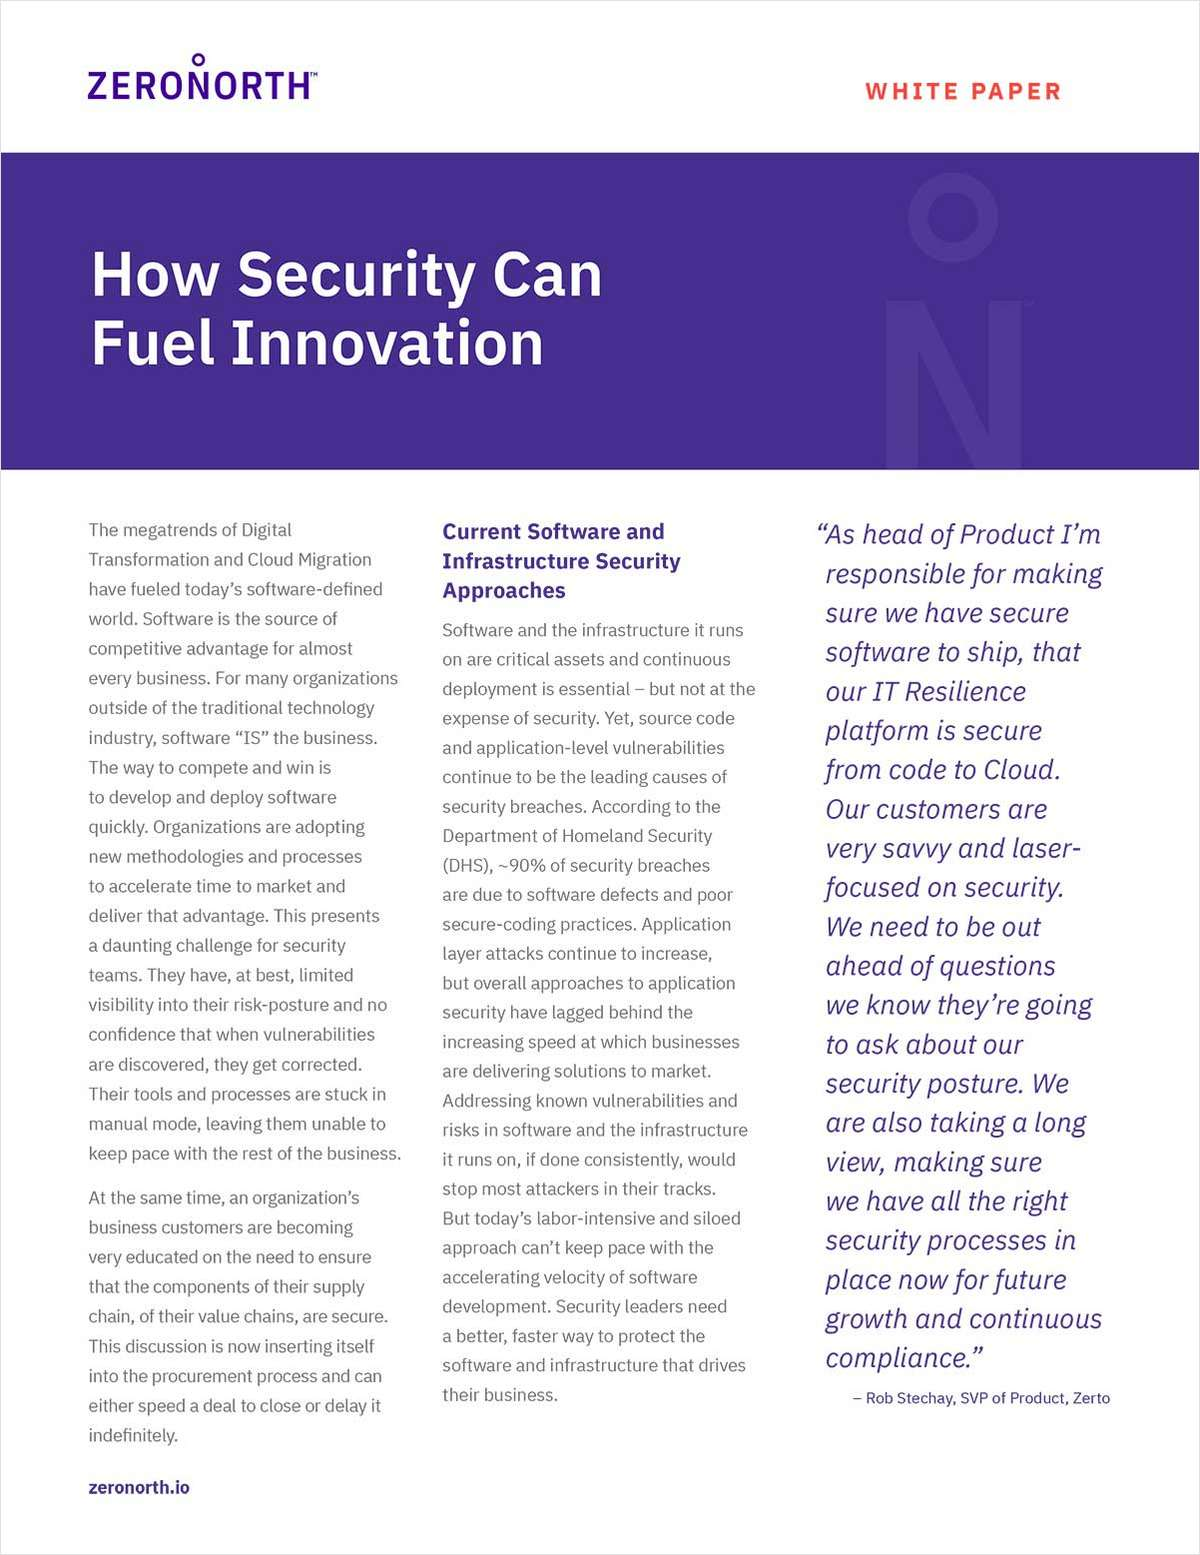 How Security Can Fuel Innovation